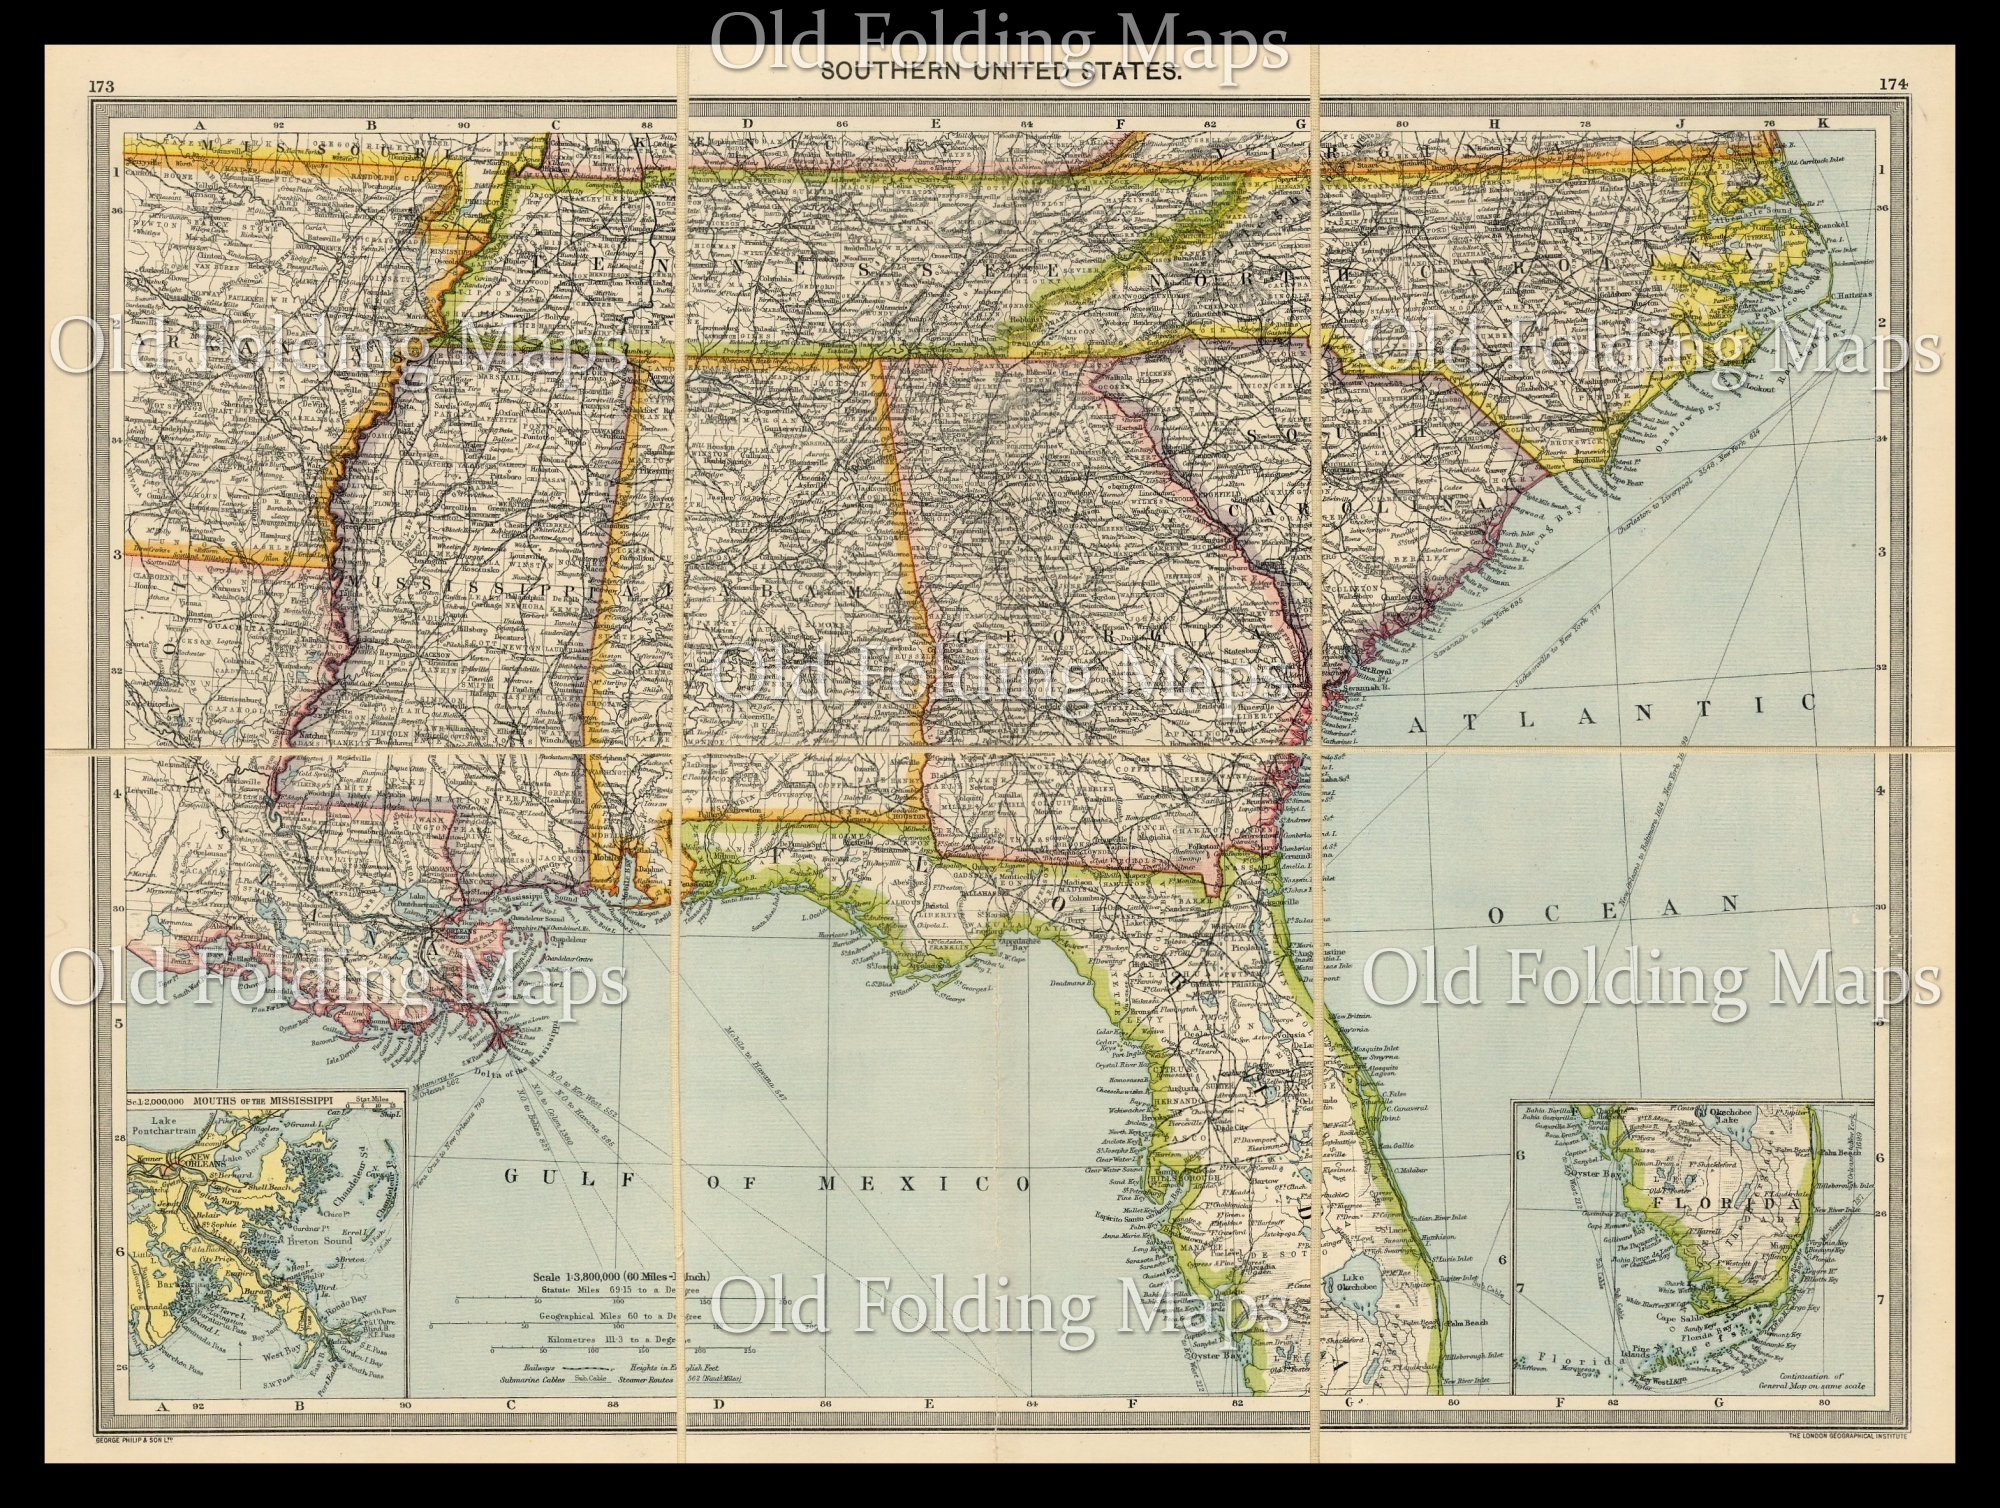 Old Map of the United States of America South circa 1900